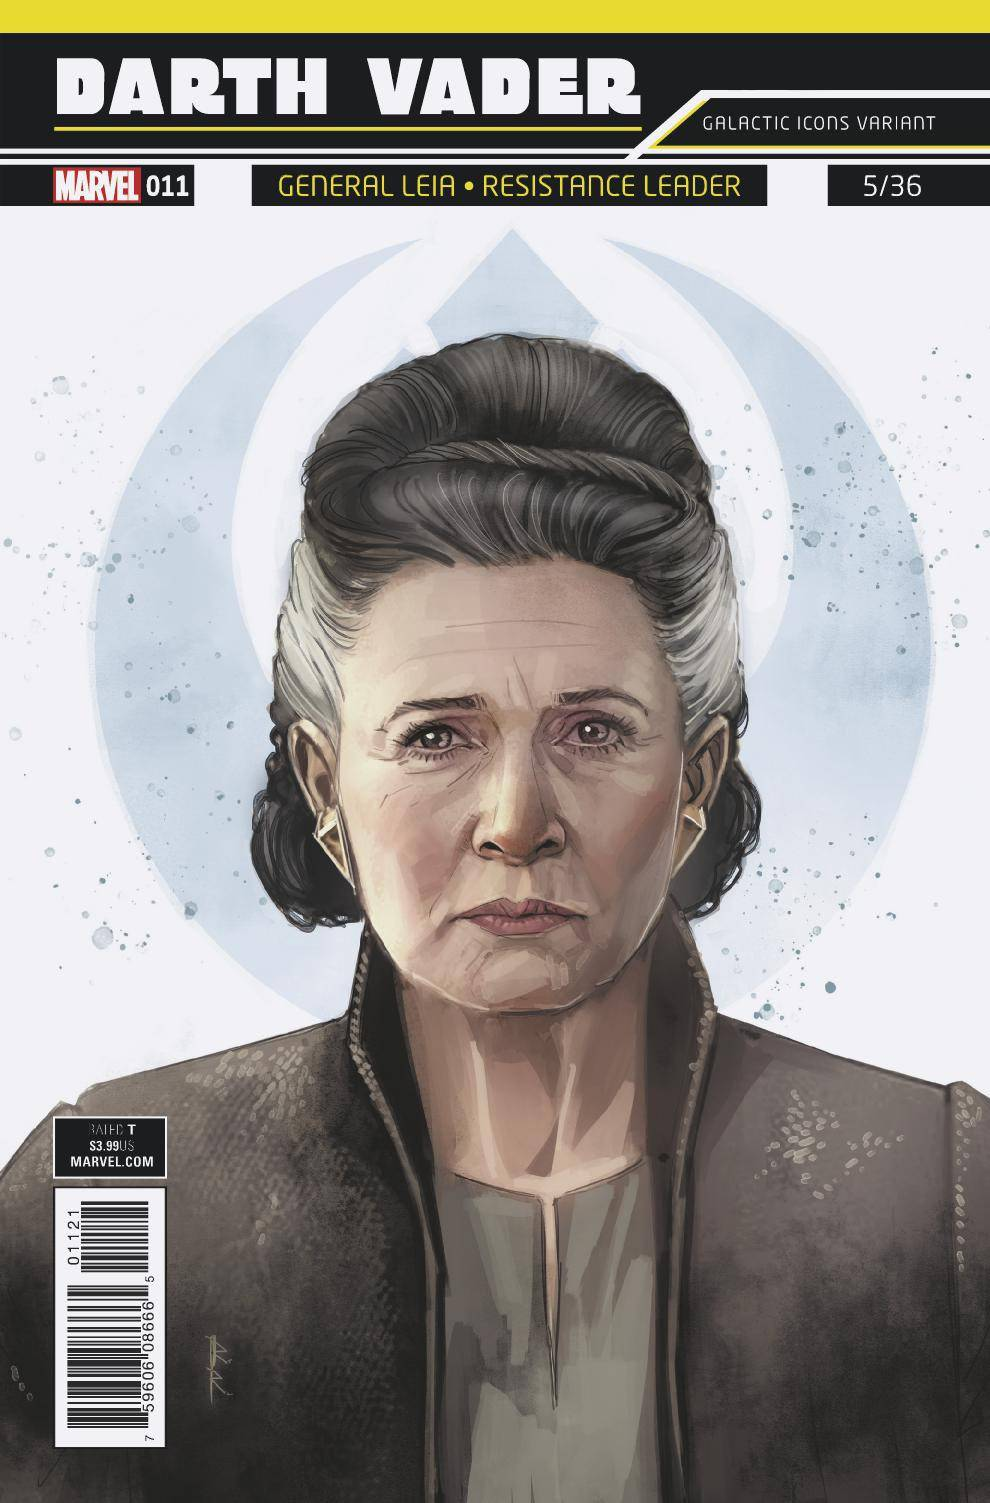 STAR WARS DARTH VADER #11 REIS GALACTIC ICON LEIA 02/14/18 RD